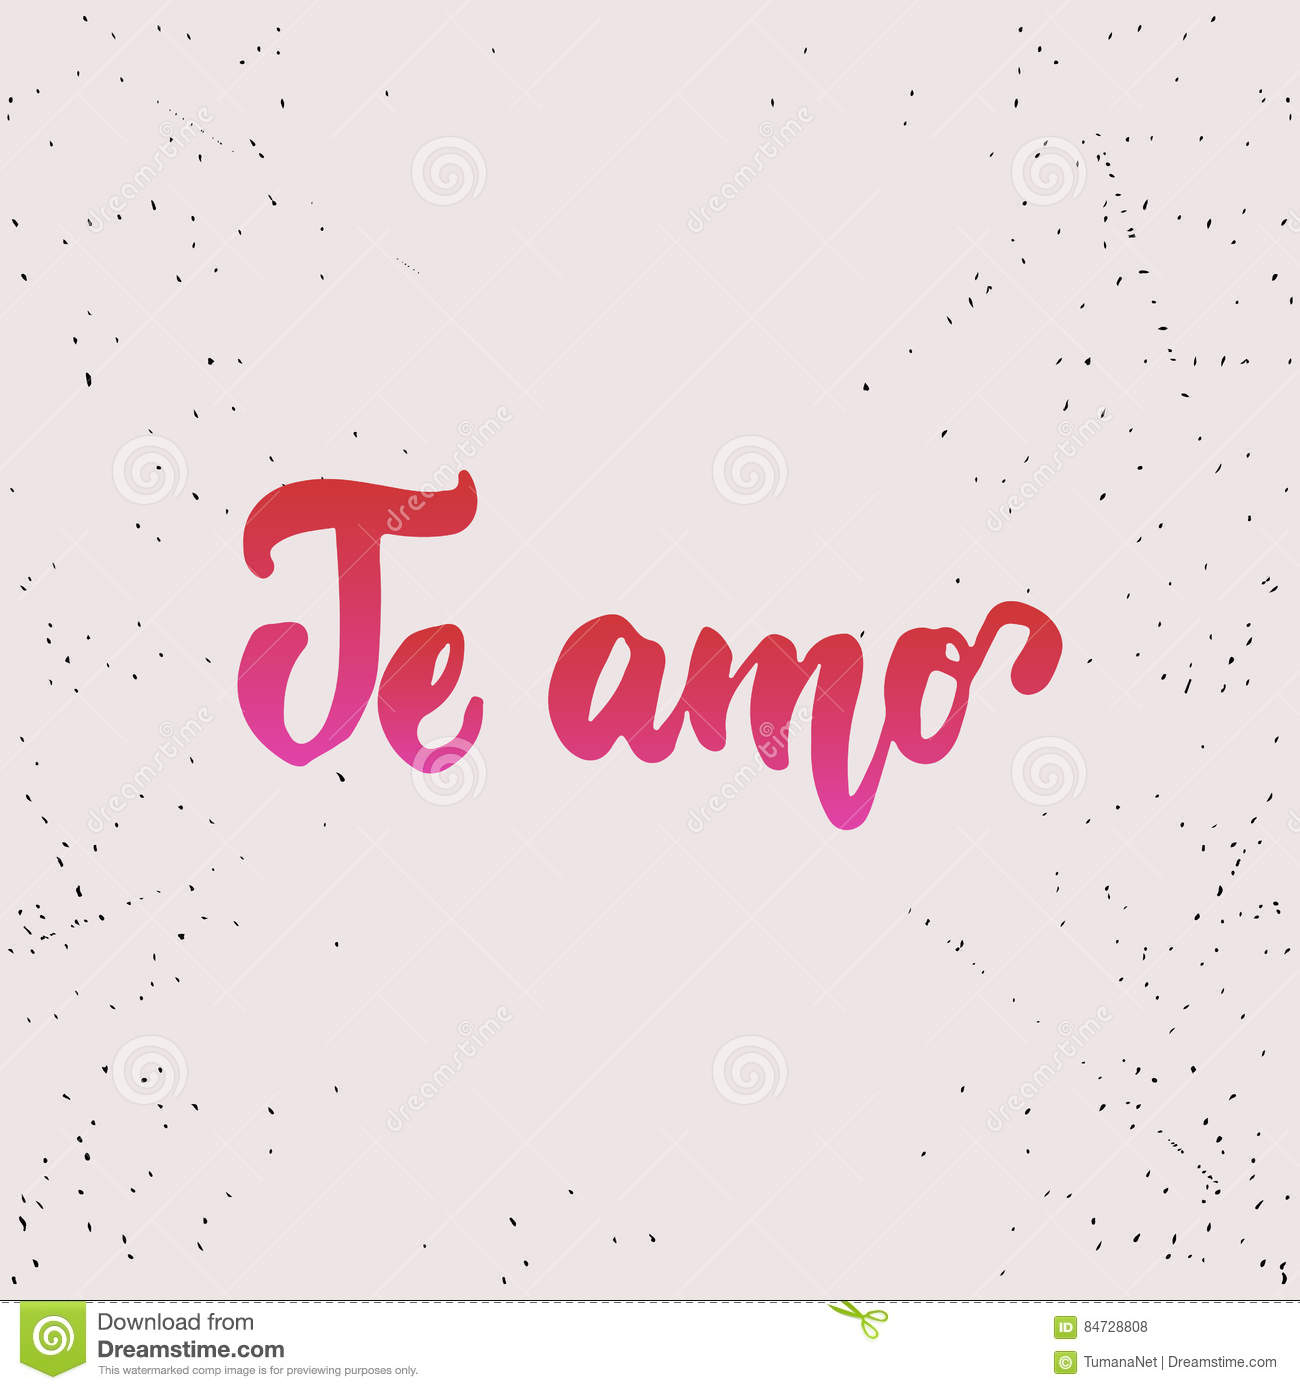 What does i love you in spanish